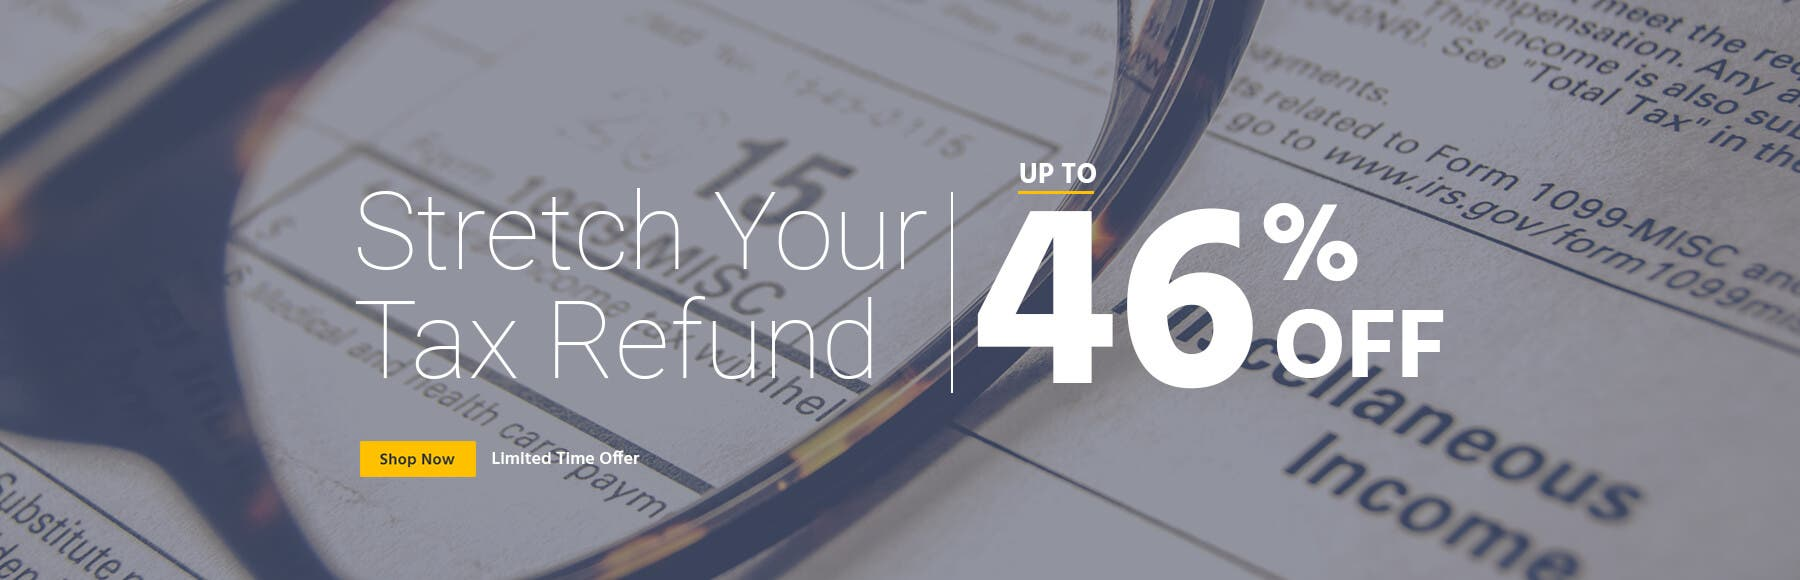 Stretch Your Tax Refund